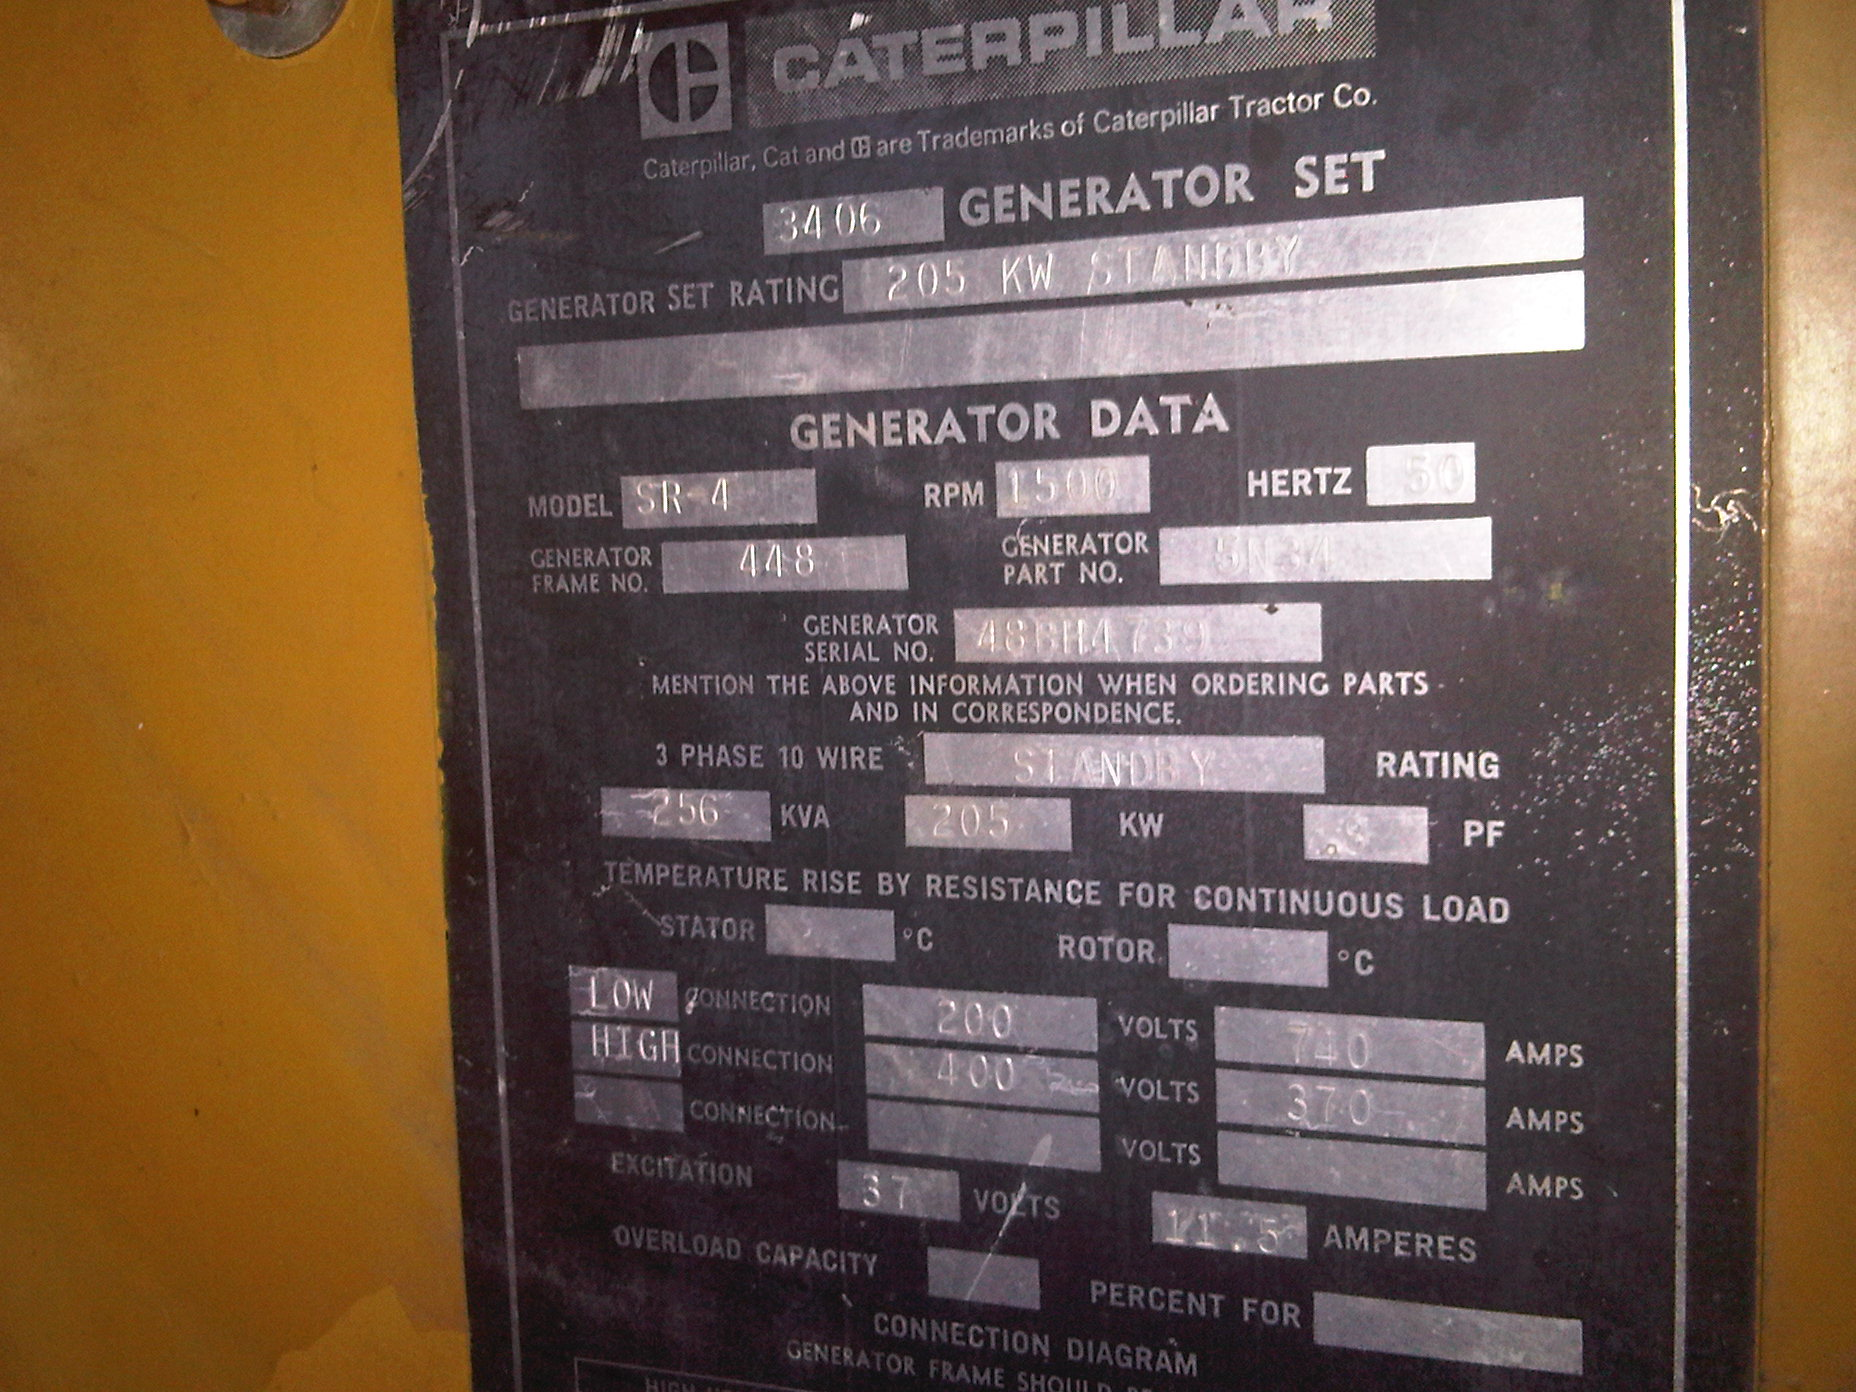 Caterpillar 3406 Generator Set Exapro 10 Wire Wiring Diagram 1 7